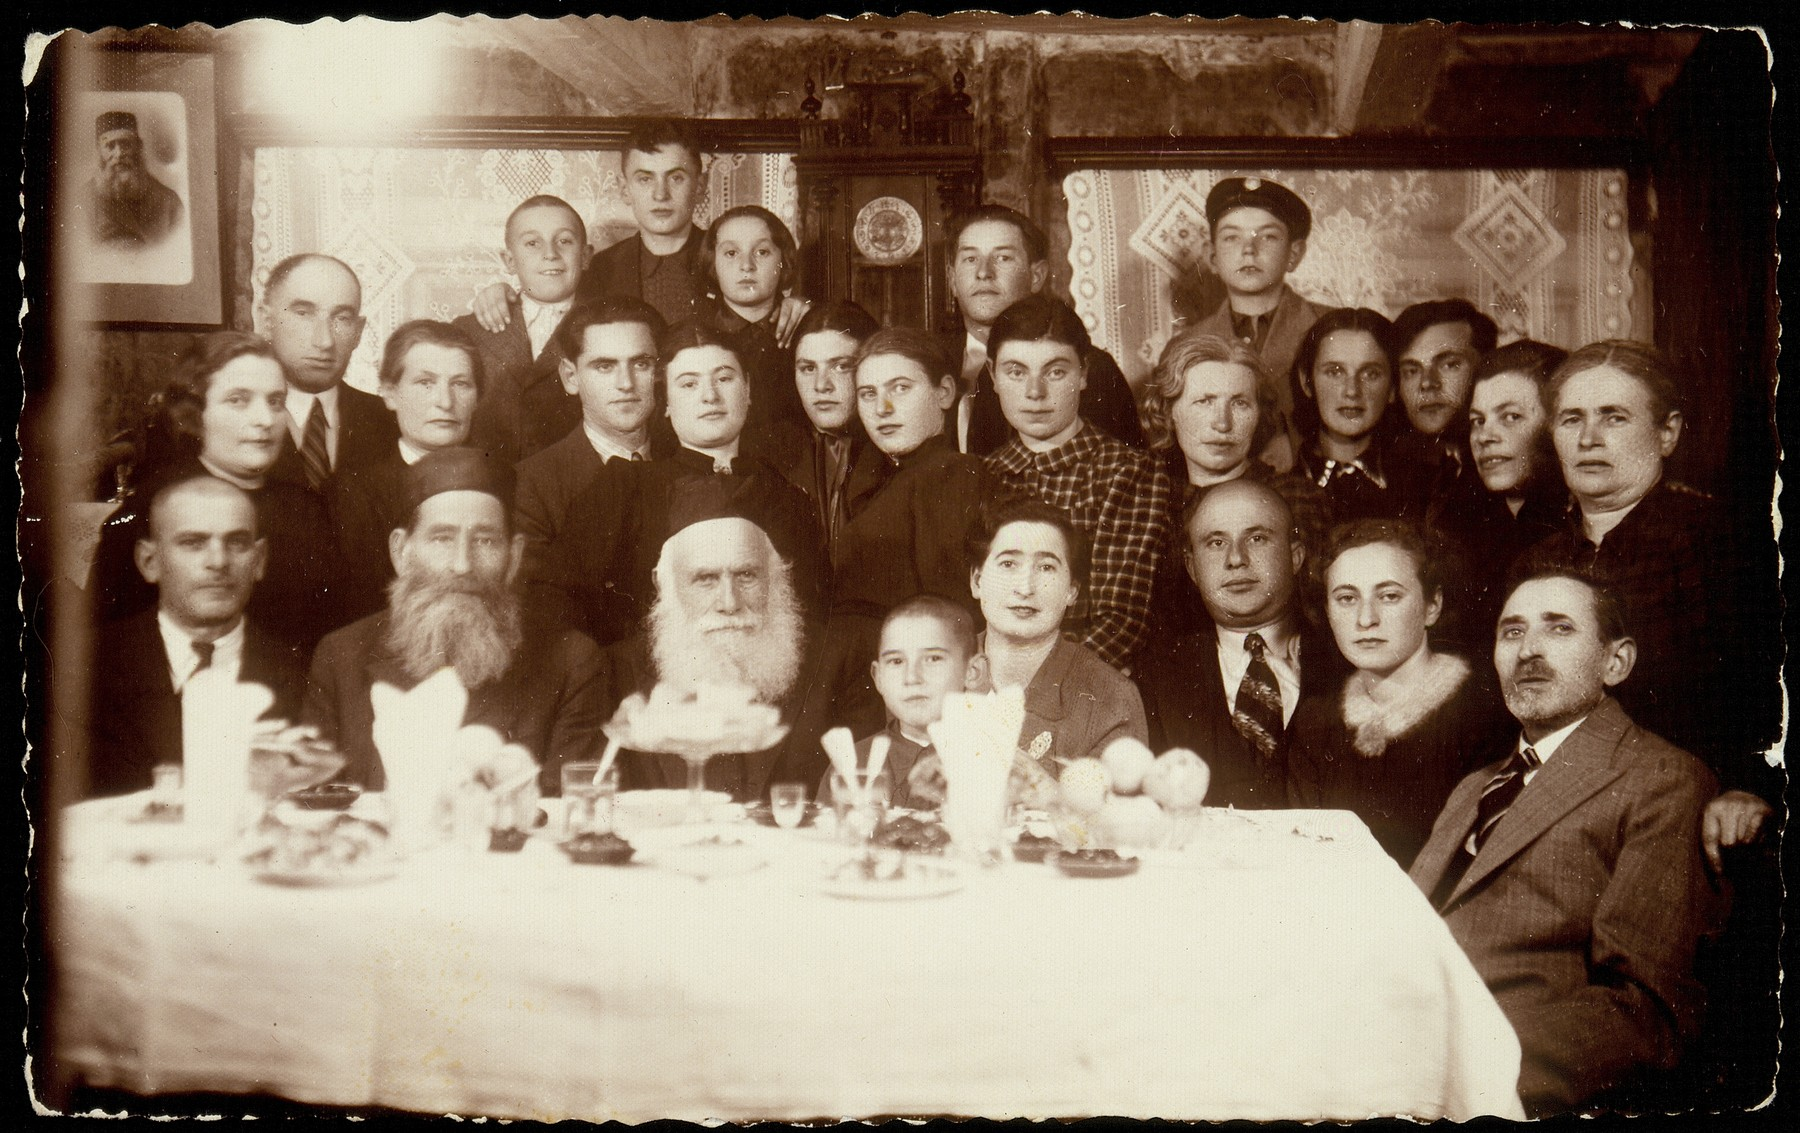 Relatives and friends gather to celebrate the wedding of Sarah Plotnik and Pessah Avrahami; it was one of the last weddings in Eisiskes.  Seated at the table from right to left are Mr. Hamarski, Dvorah Hamarski, Benyamin Kabacznik, Liebke Kabacznik, Yudaleh Kabacznik, Reb Arieh-Leib Kudlanski, Reb Dovid Moszczenik, and the father of the bride, Eliyahu Plotnik. Second row (right to left): Mrs. Hamarski, five family members; twin sisters of the bride, Mikhele and Breine Plotnik, the bride and groom; Zipporah Plotnick, mother of the bride; and two unidentified relatives.    The bride and groom immigrated to Palestine.  Reb Dovid Moszczenik died a natural death.  All the others perished.  Benyamin, Liebke and Yudaleh were murdered by members of the Polish Home Army; the majority were killed in the September 1941 mass killing action in Eisiskes; a few were killed in the Radun and Lida ghettos.